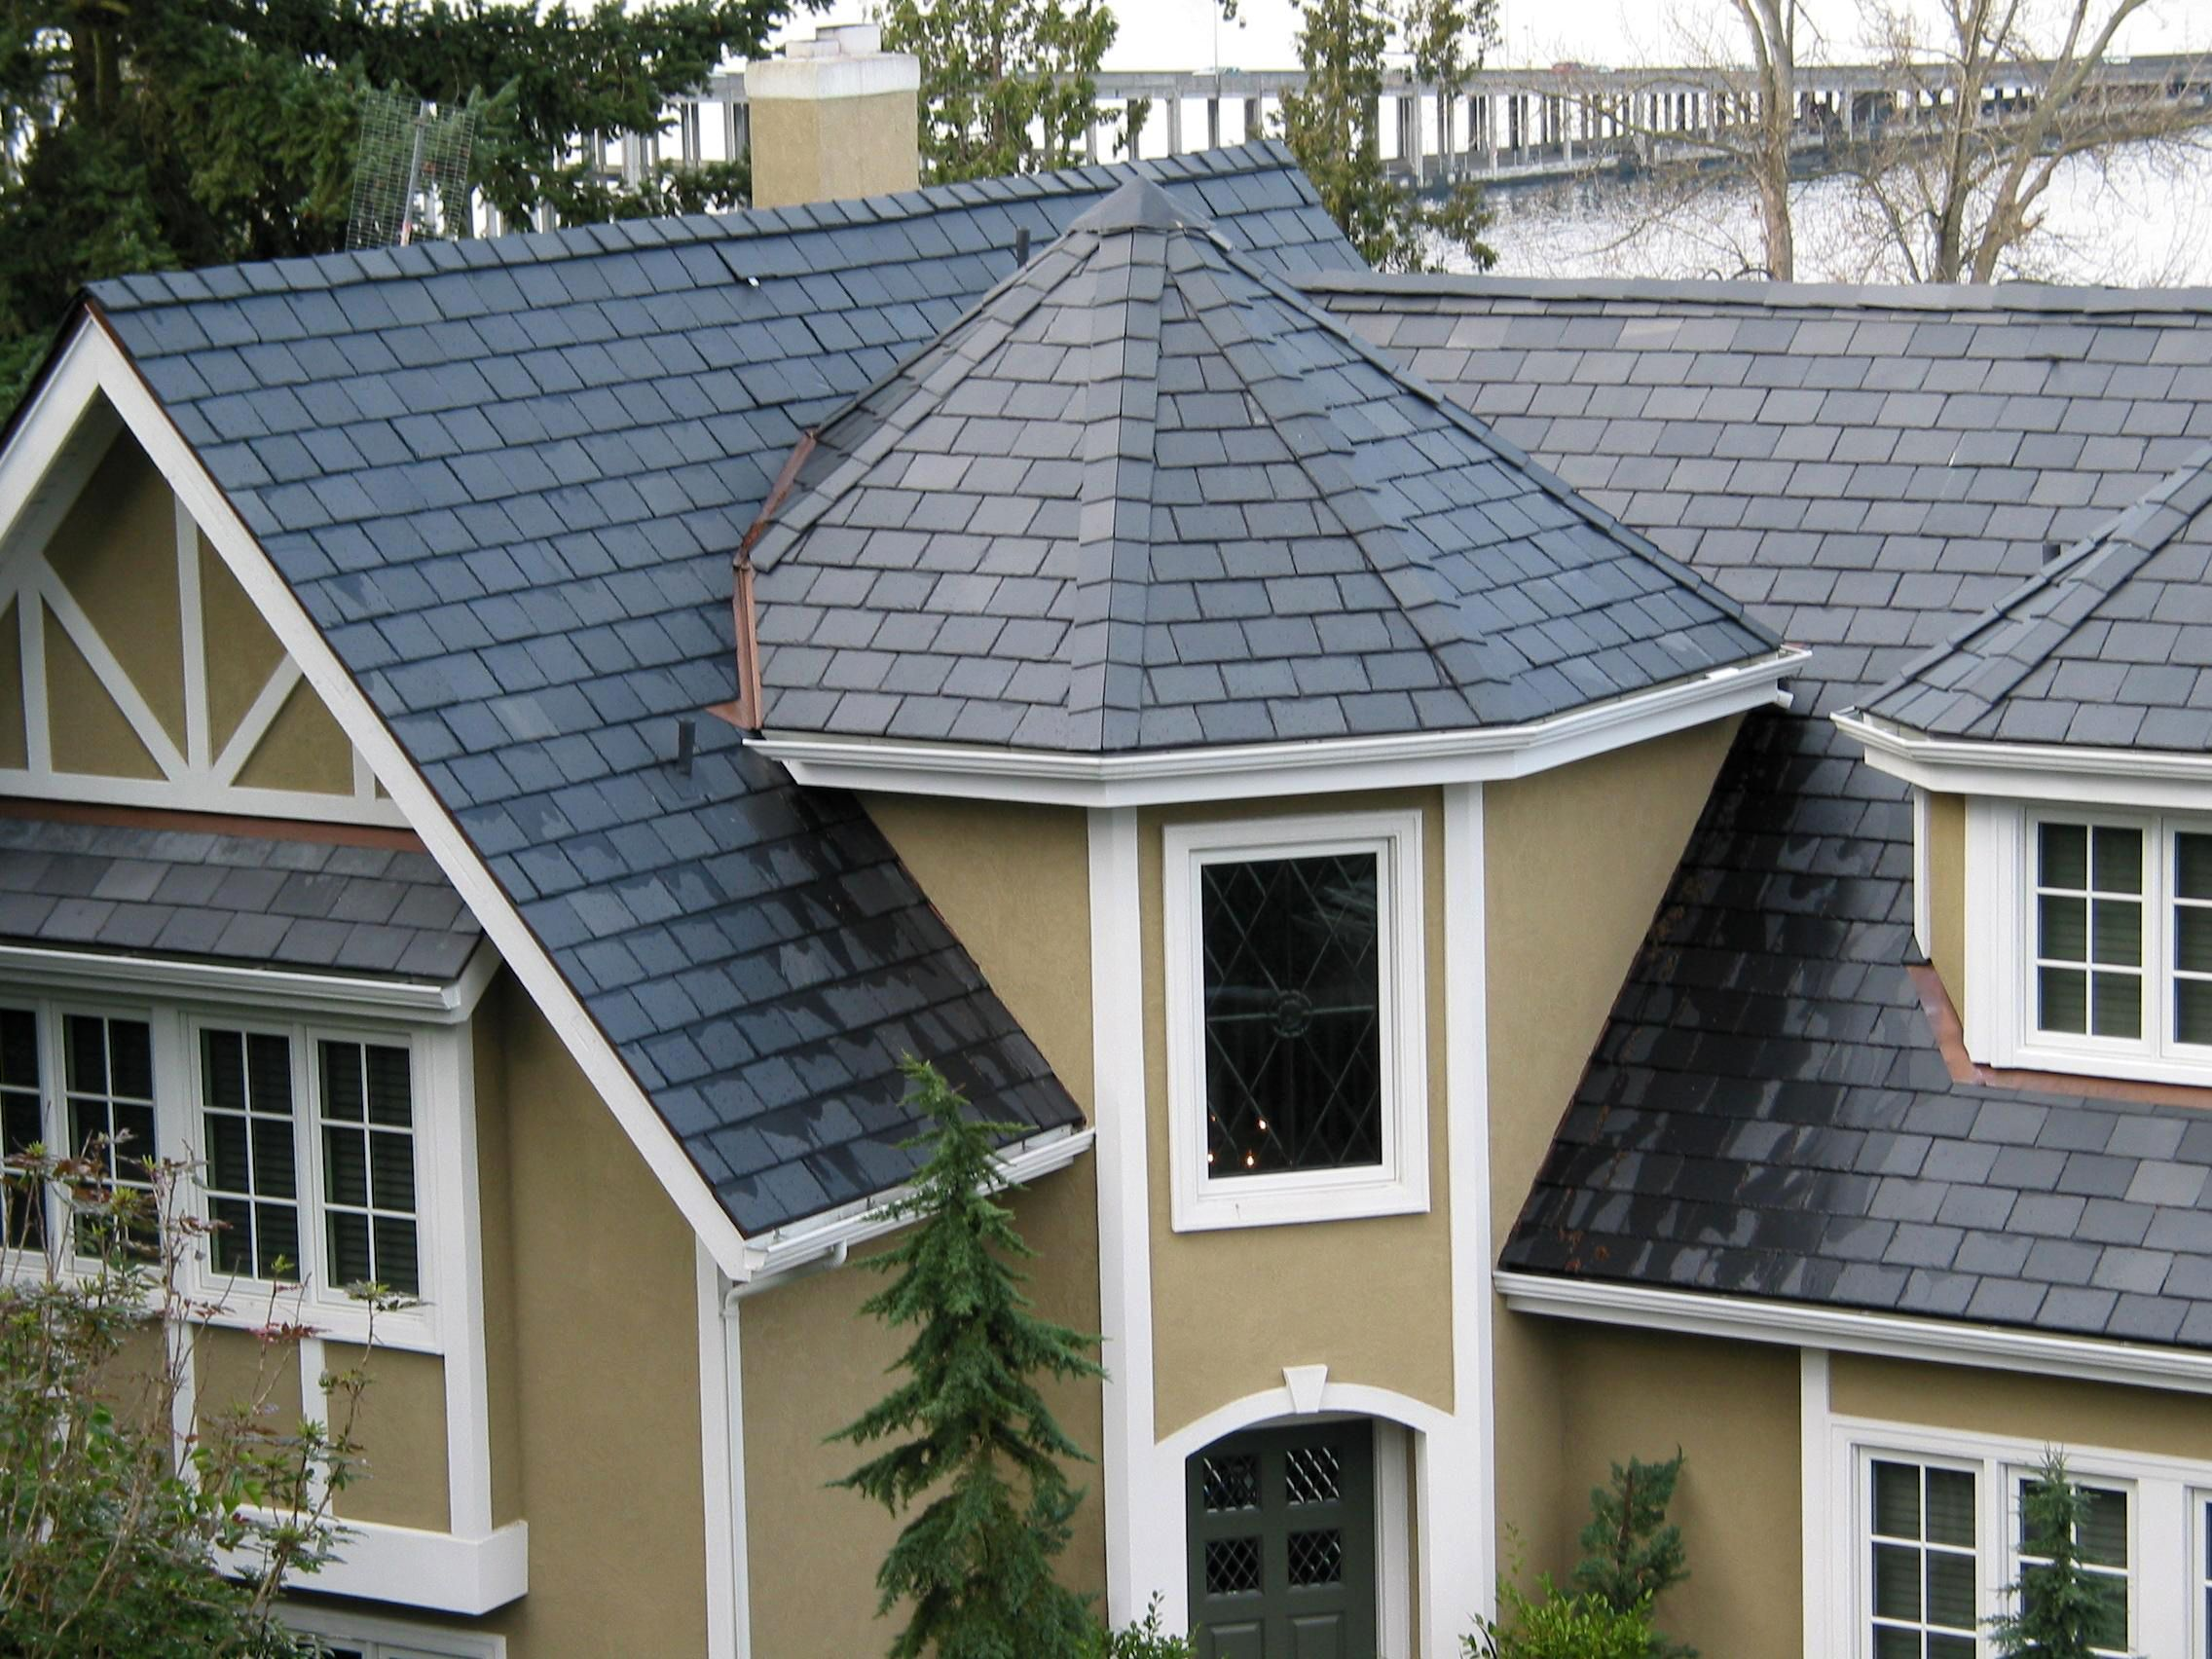 One Of The Major Benefits Of Slate Roofing Lies In Its Natural Aesthetics Since Slate Comes In A Wide Variety Of Sizes C Florida Apartments Reroofing Roofing